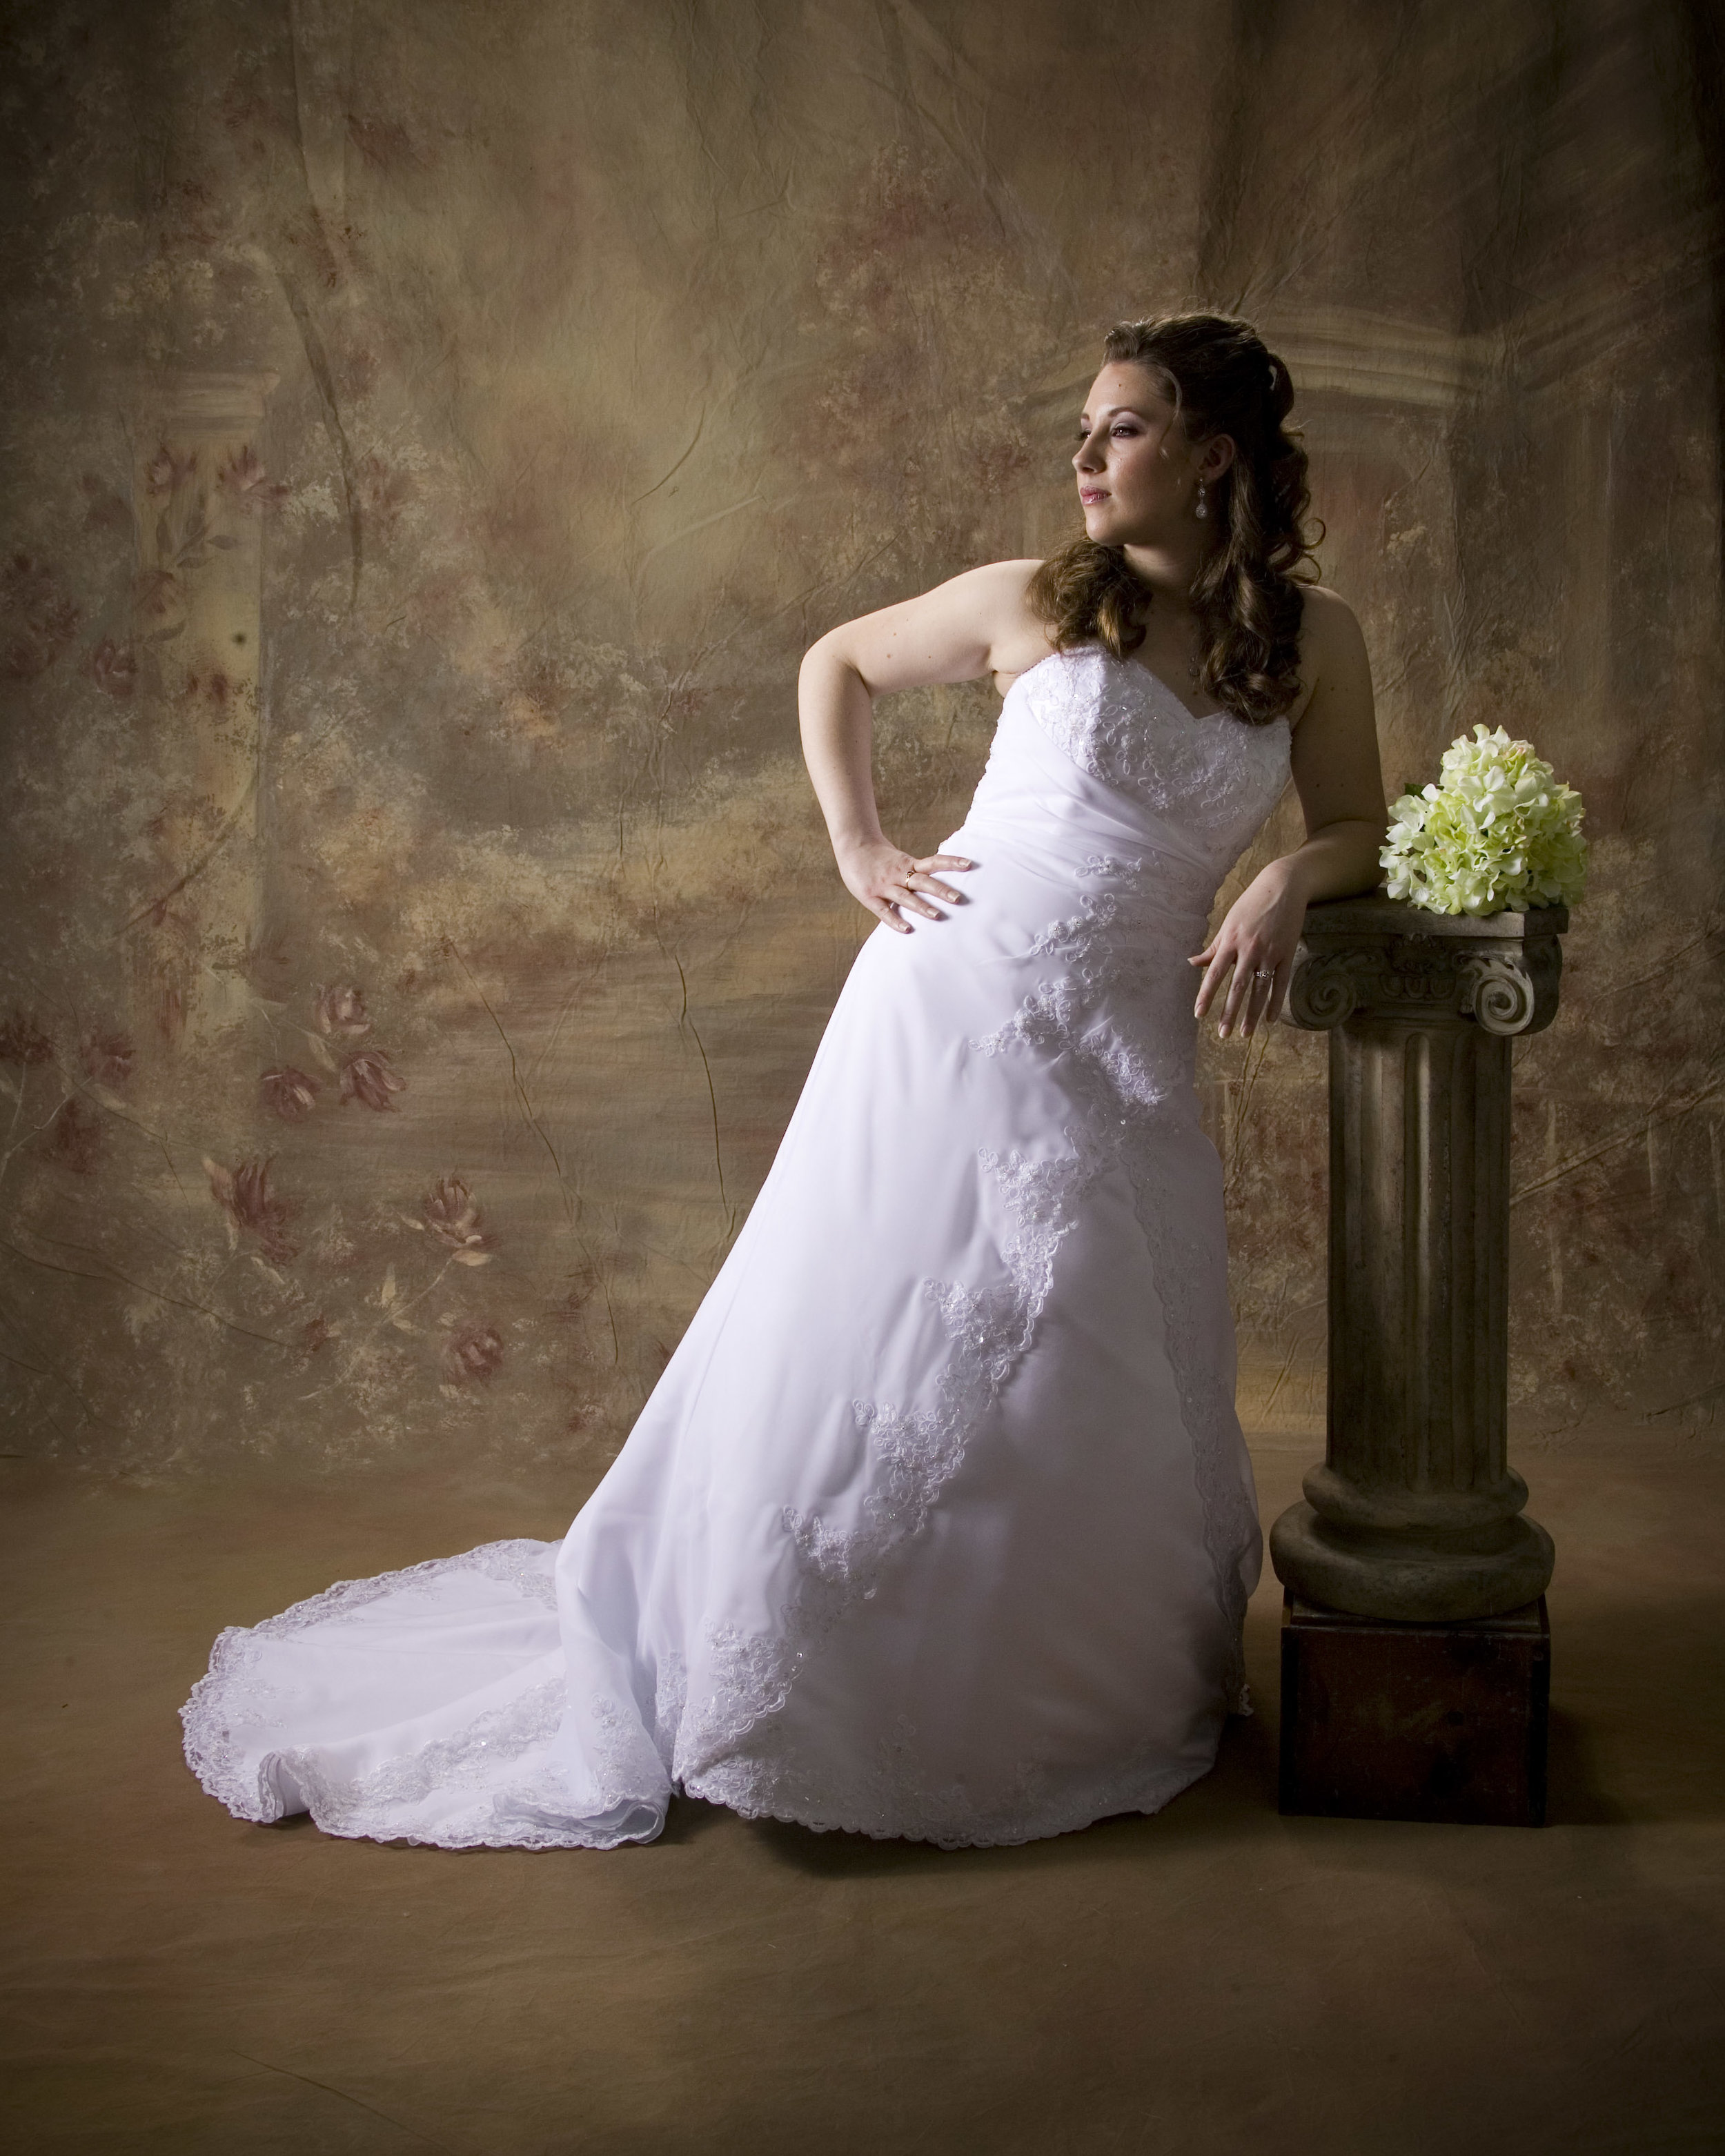 Portrait-Of-Bride-Against-Artistic-Studio-Background.jpg